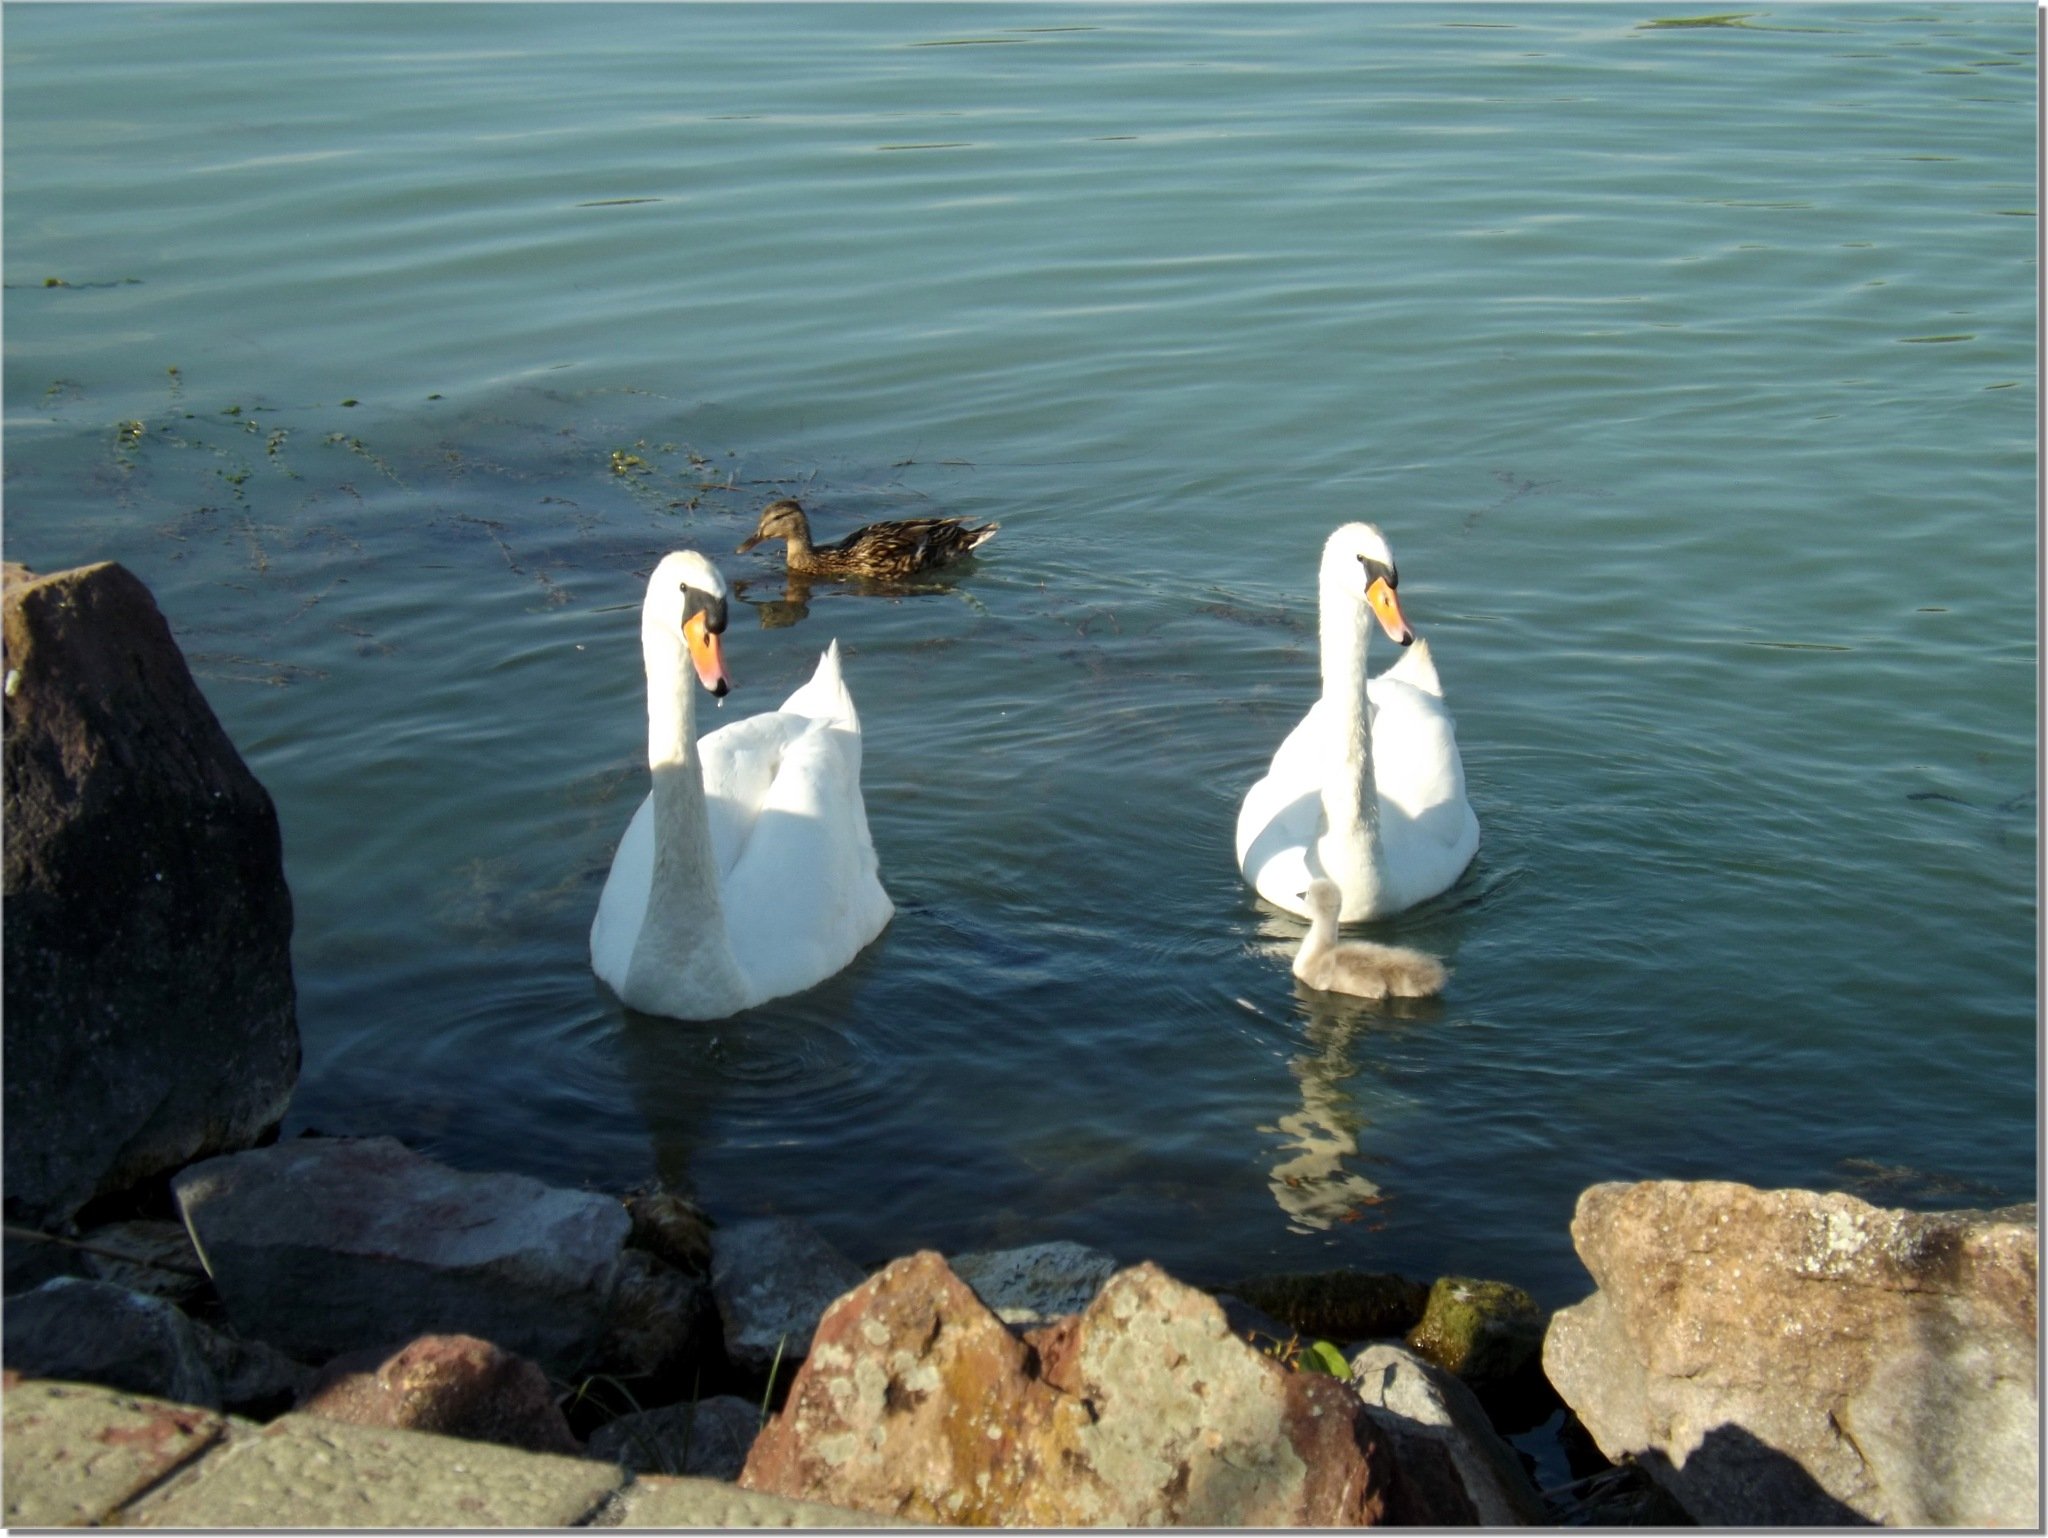 Swan family in Balaton lake by Imre Lakat